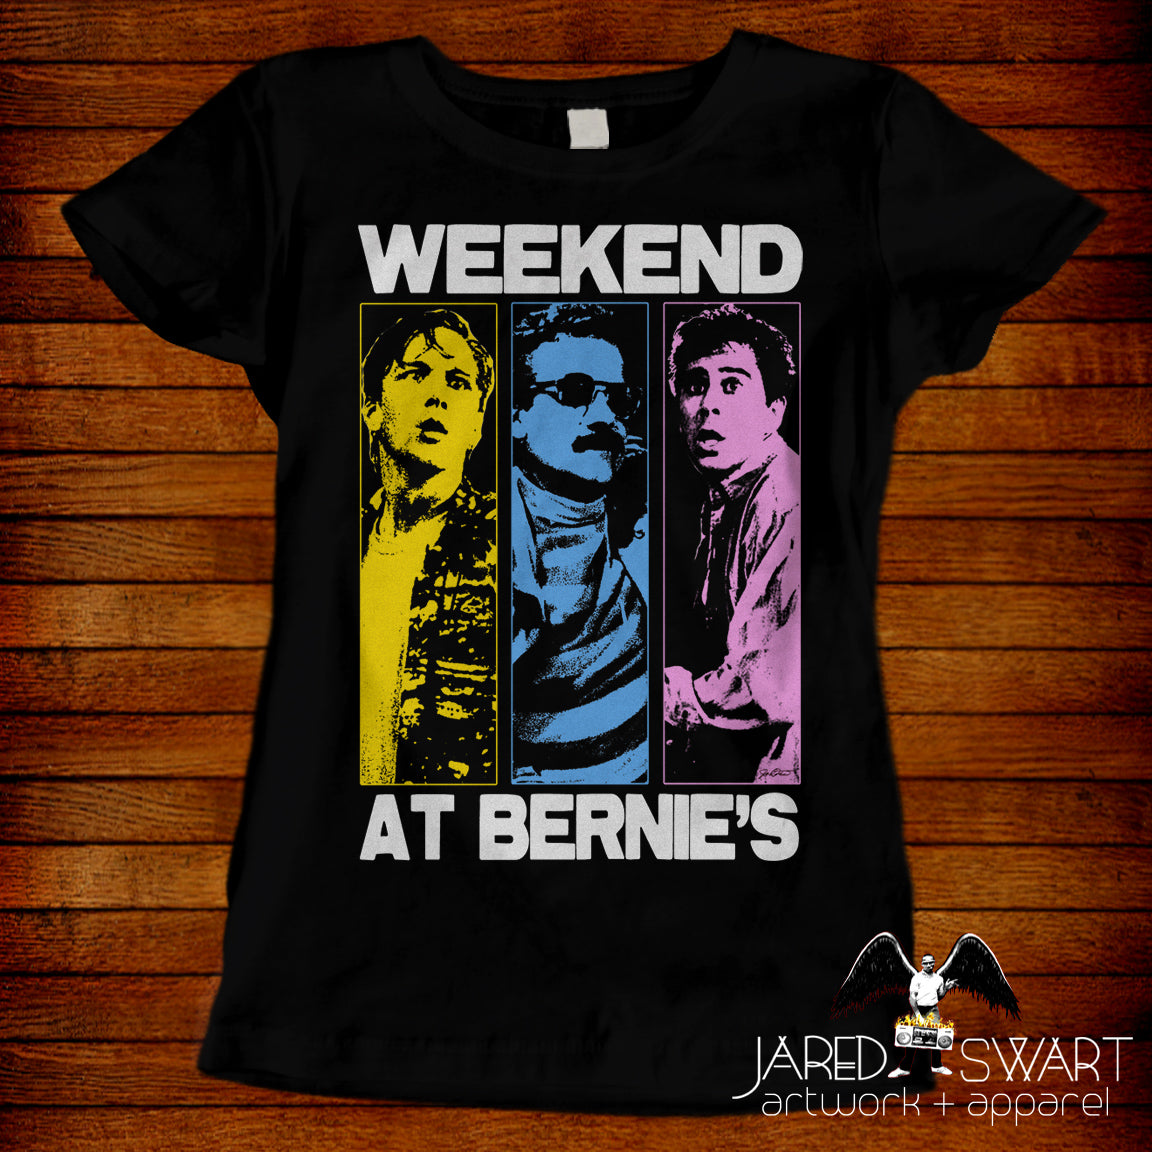 Weekend At Bernie's T-shirt Pop-Art style design by Jared Swart